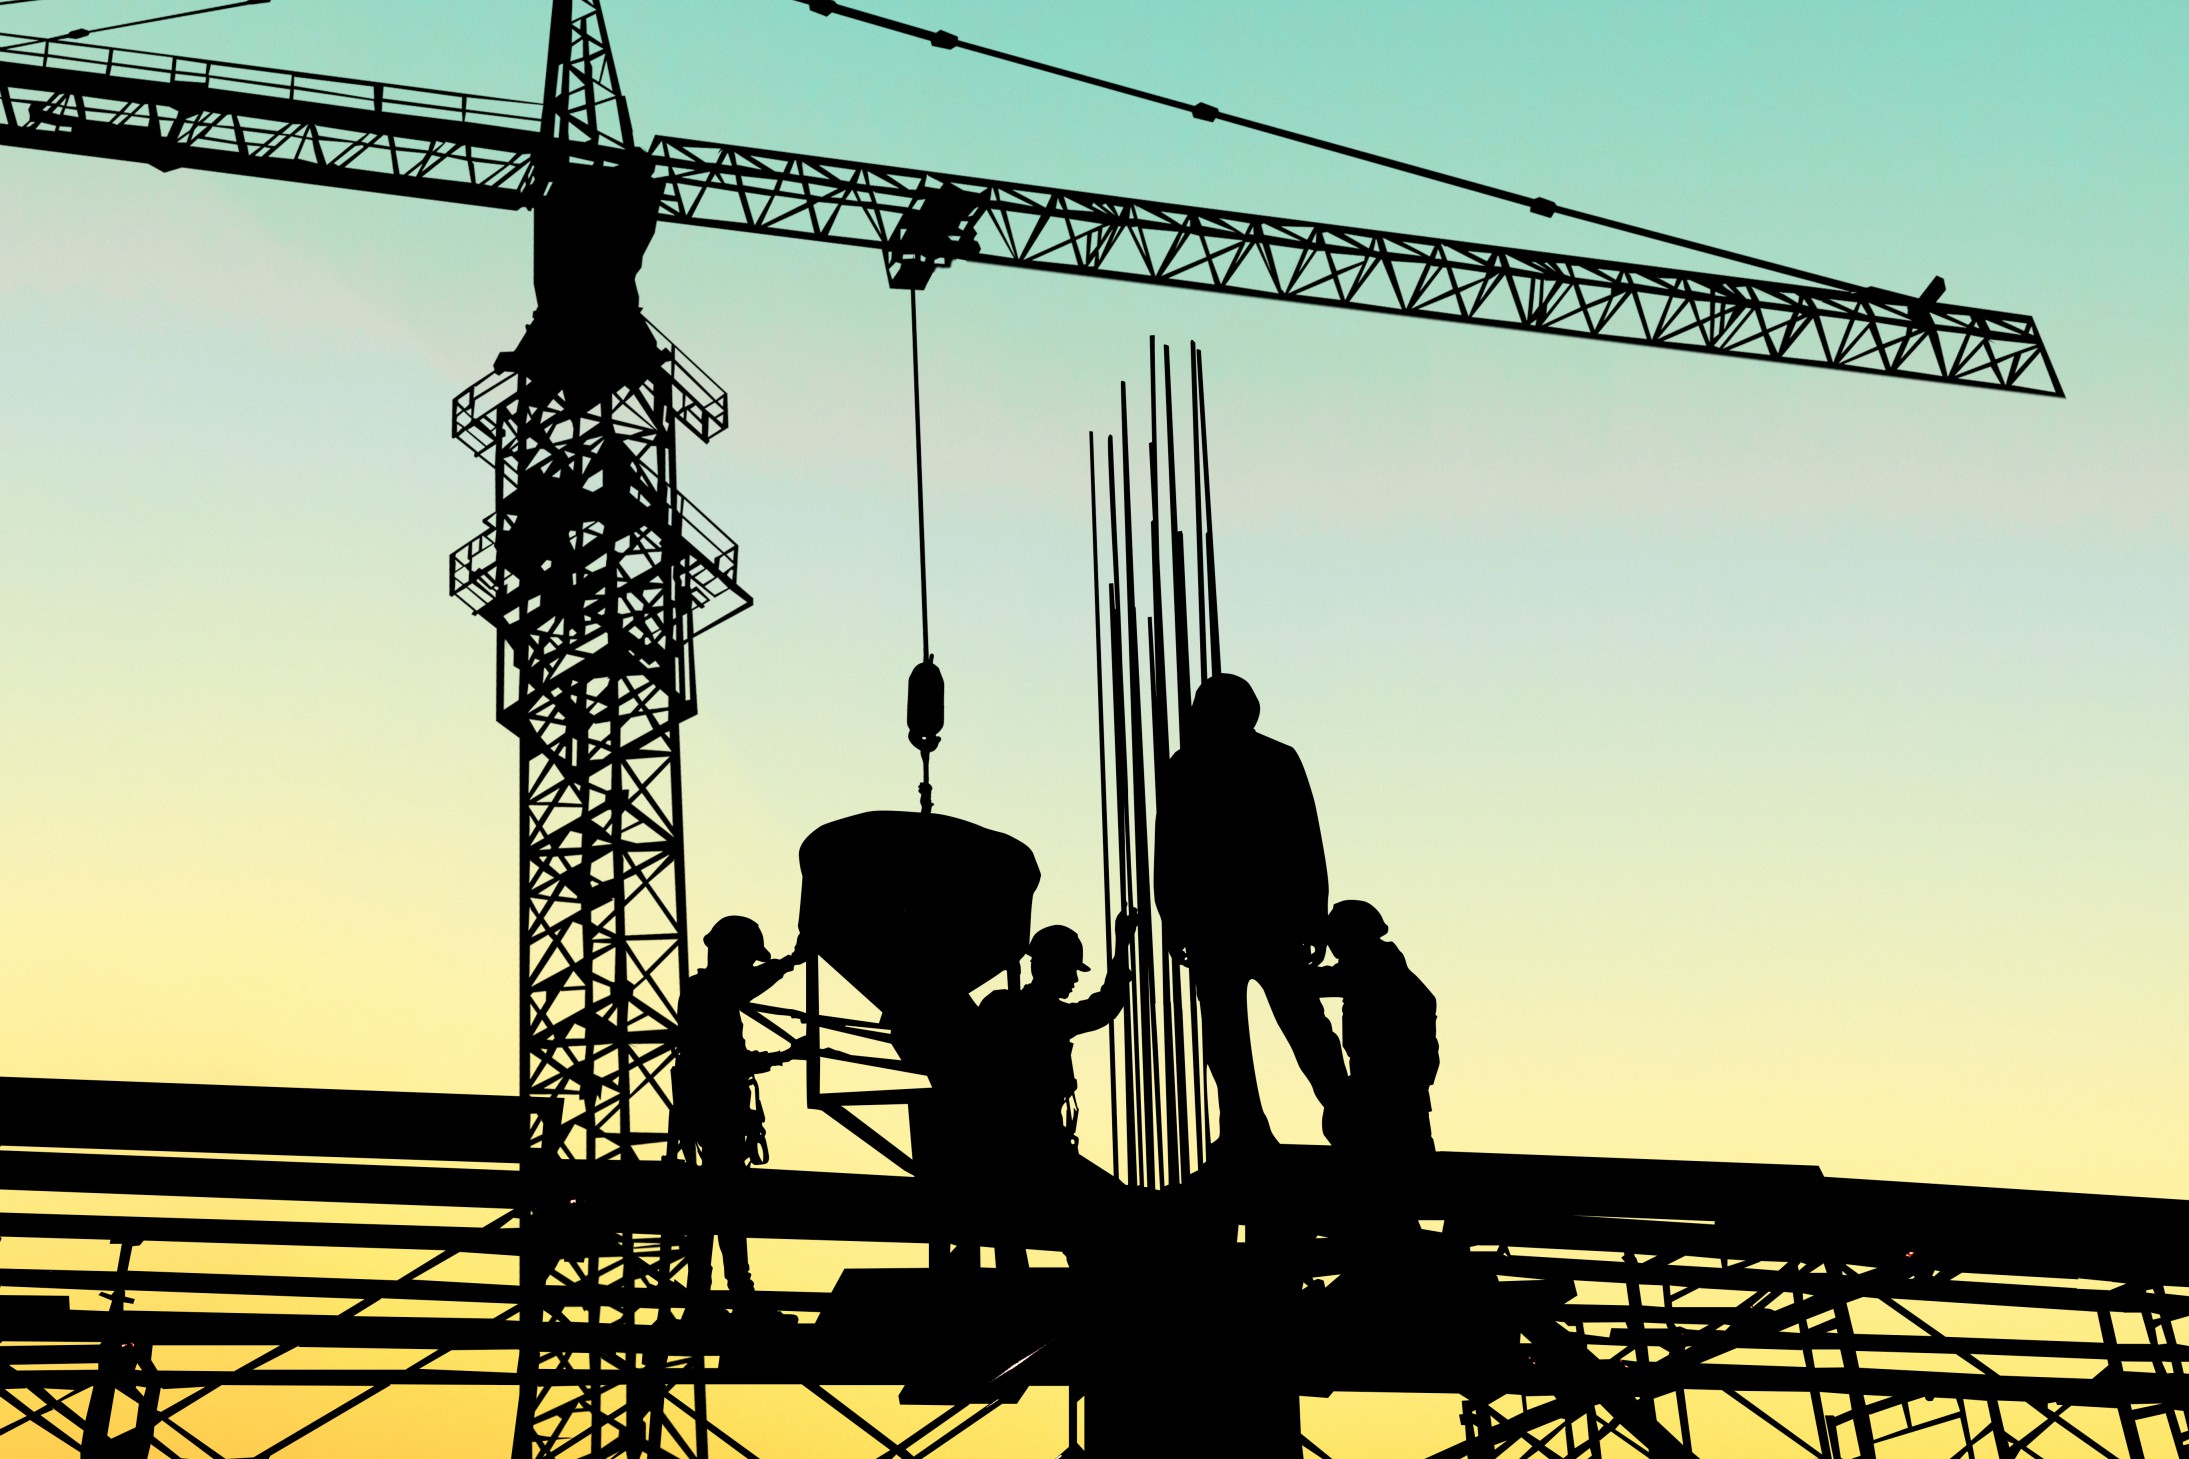 Separovic_Injury_Lawyers_Workers_Compensation_Personal_Injury_Claims_-_Construction_Site (1).jpg